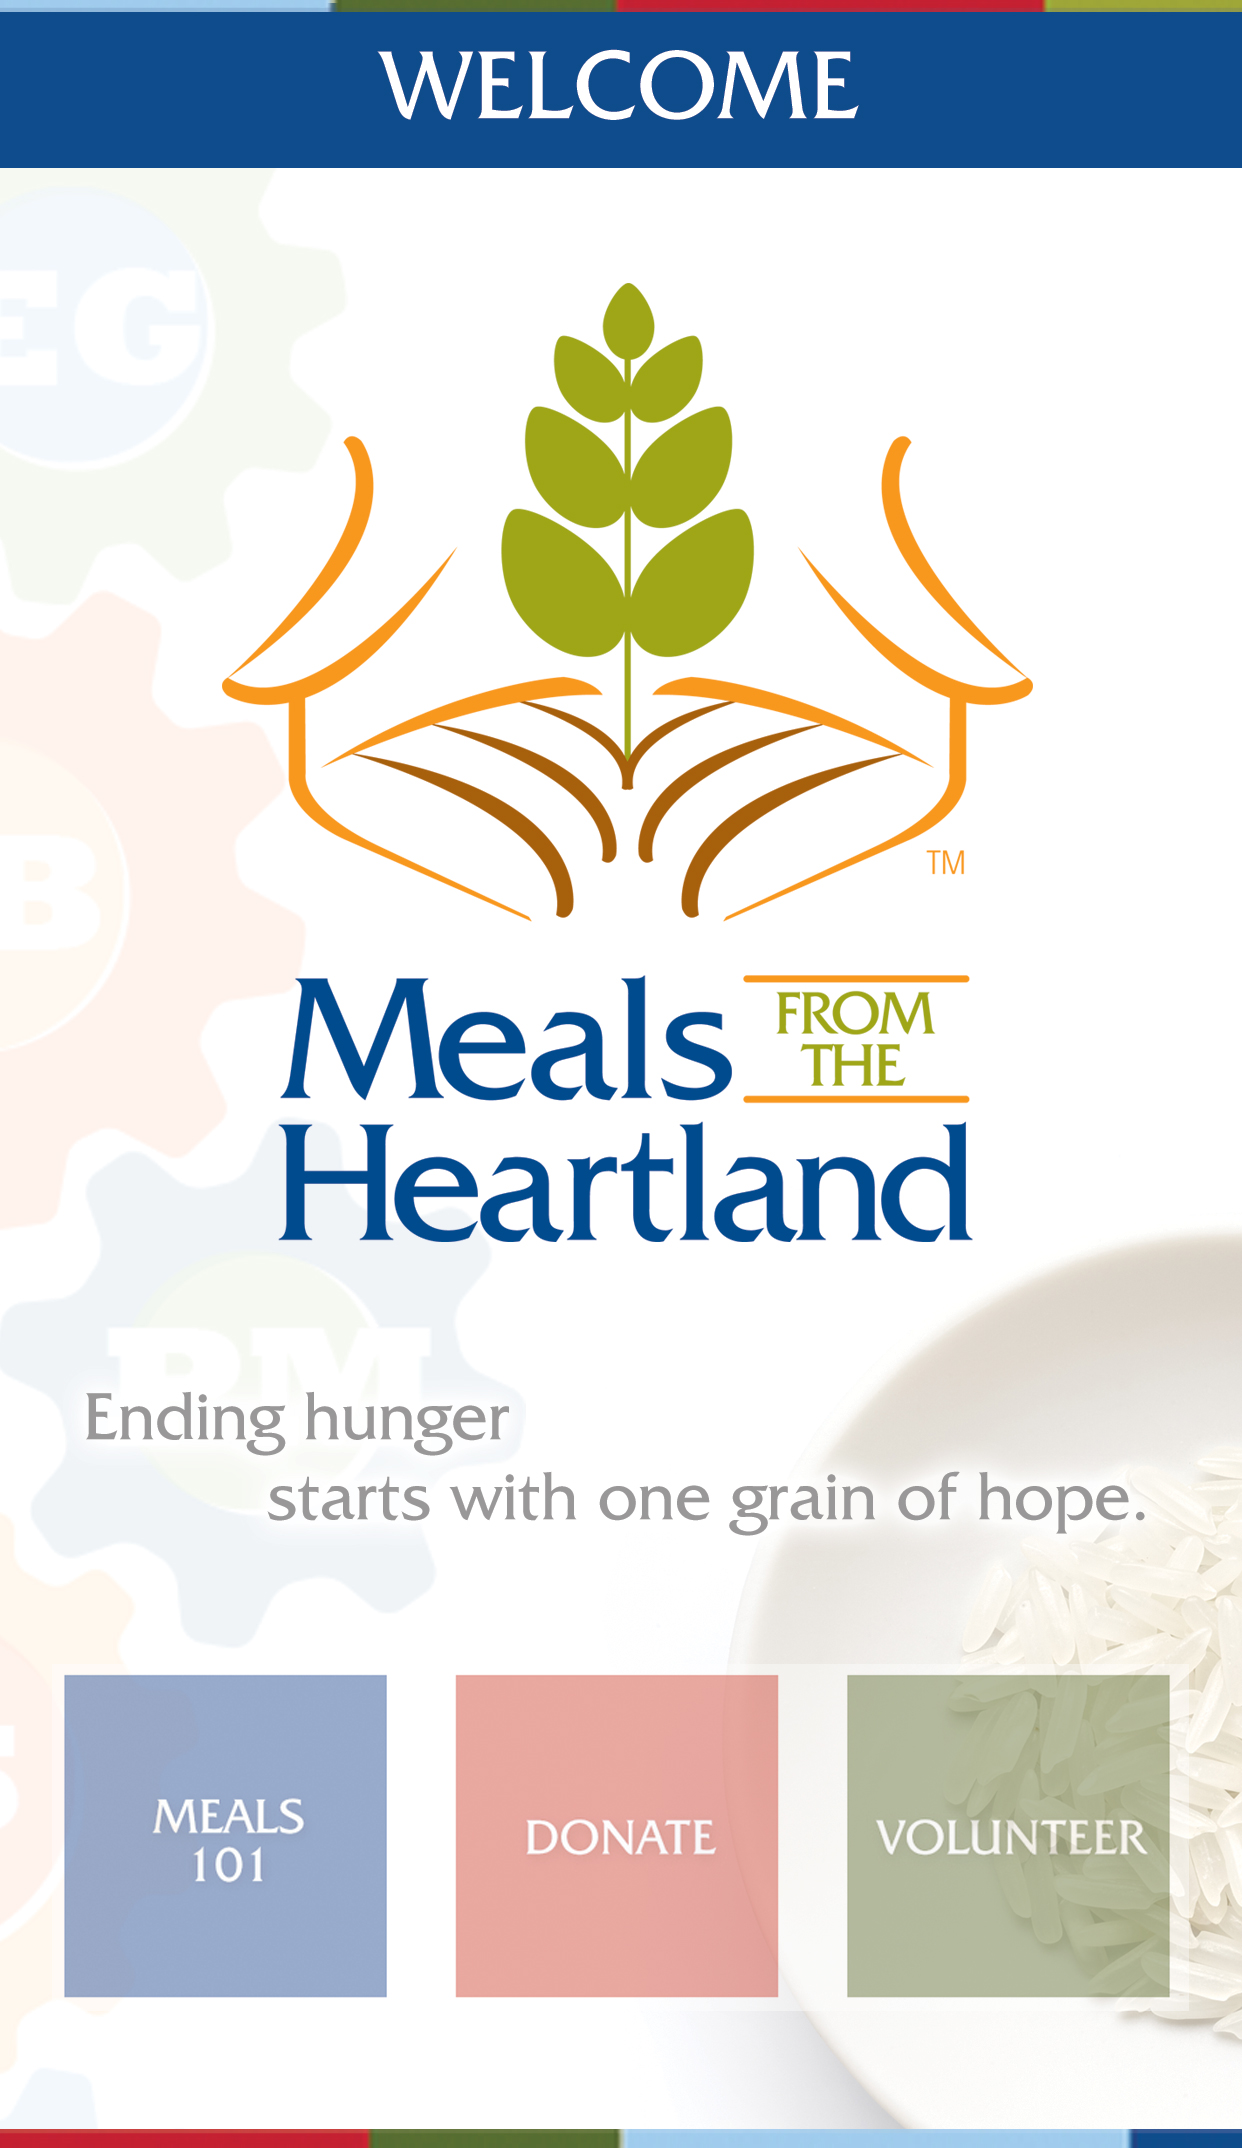 welcome to Meals from the Heartland - Fighting Worldwide Hunger one grain of hope at a time